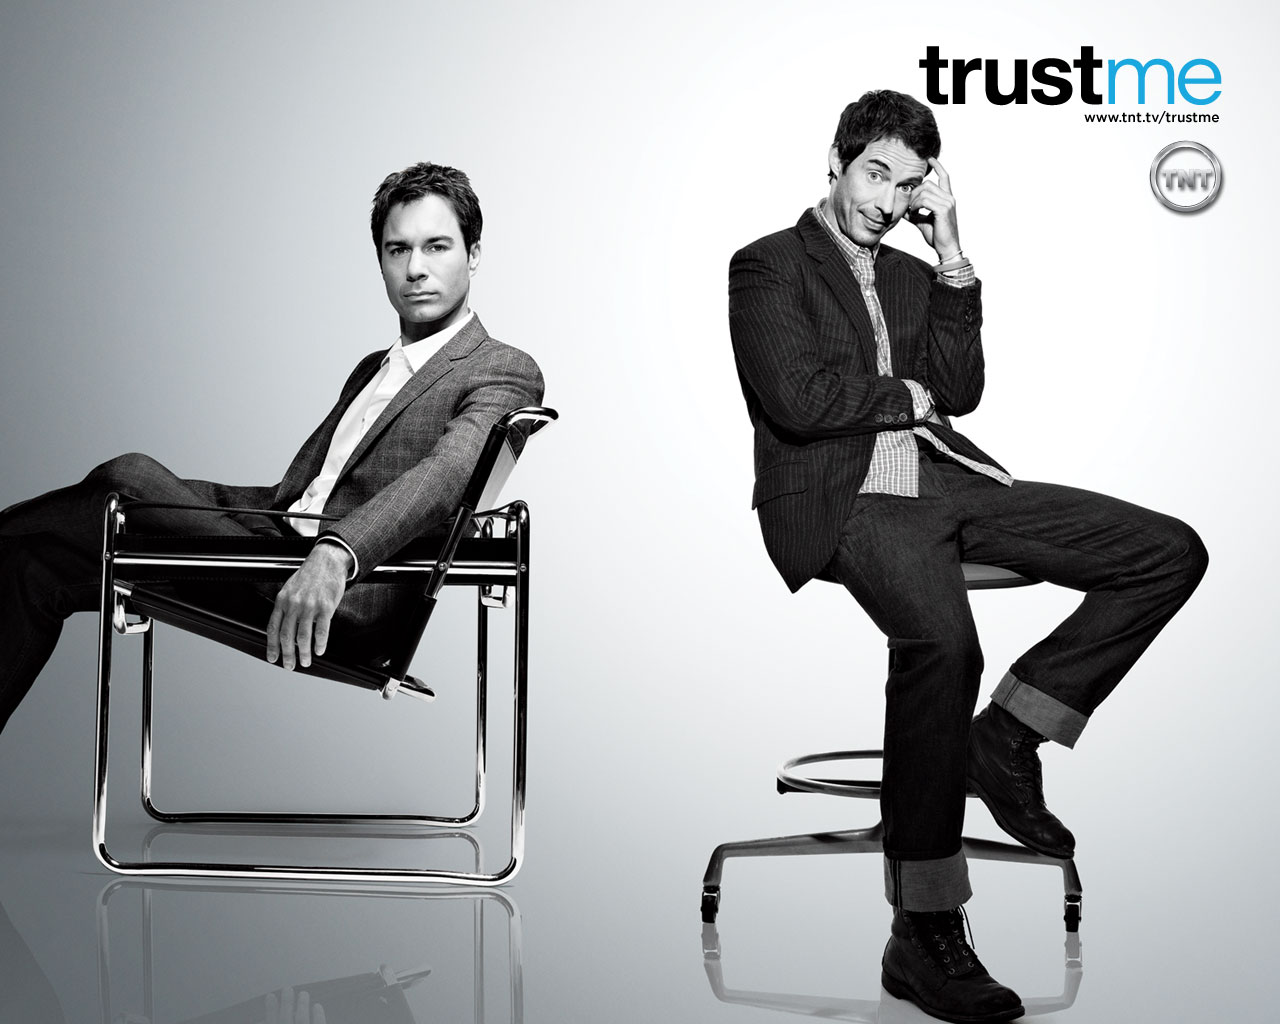 trustme_wallpaper_07_1280x1024